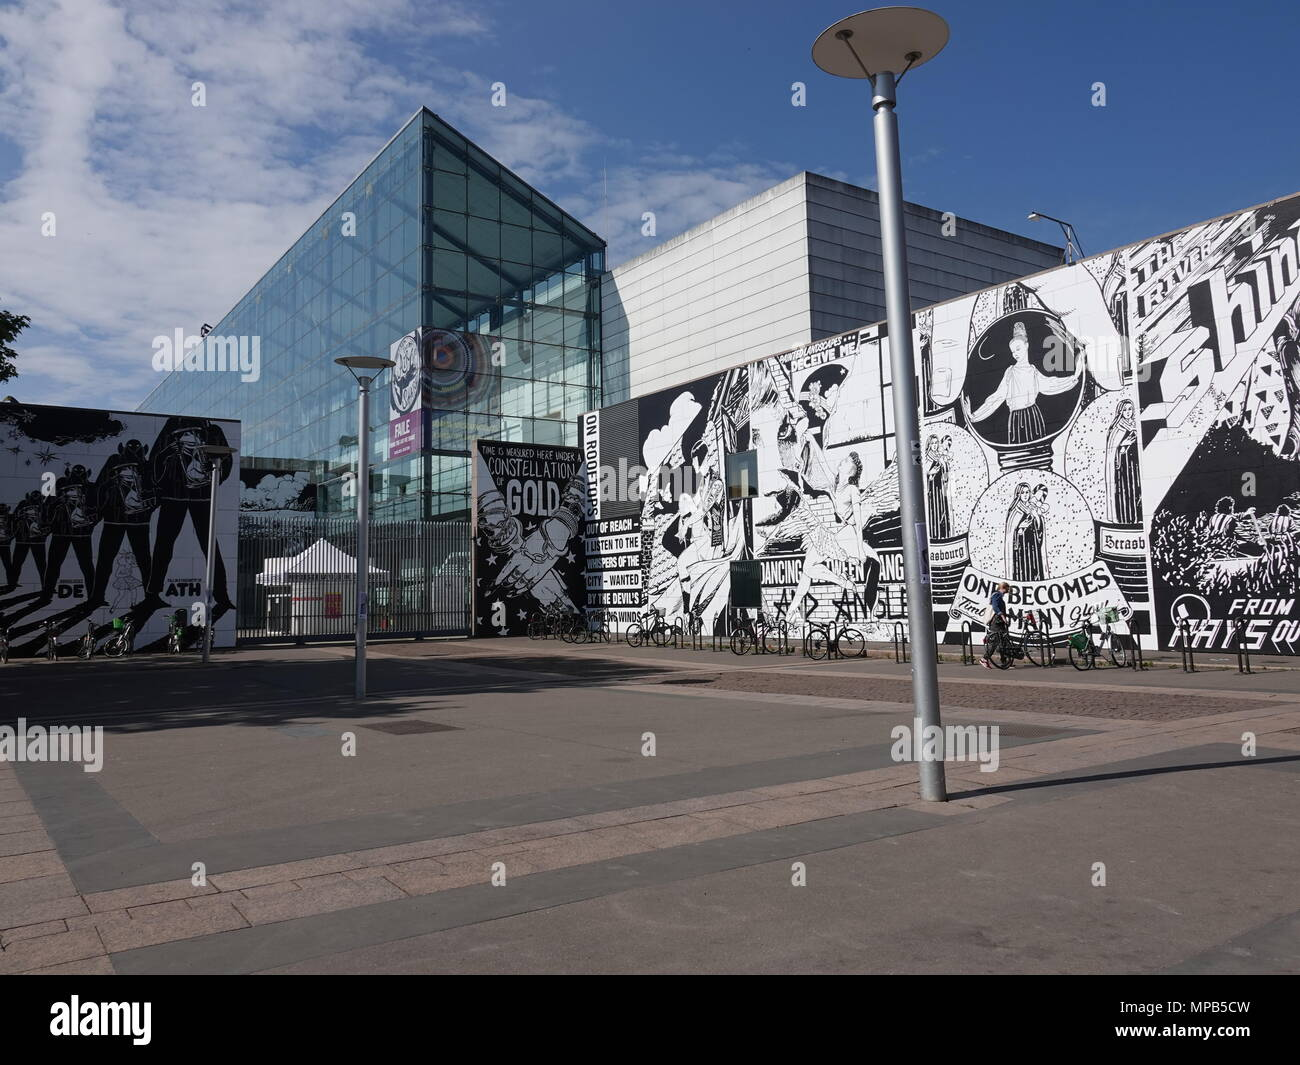 Strasbourg Museum of Modern and Contemporary Art, Strasbourg, France - Stock Image